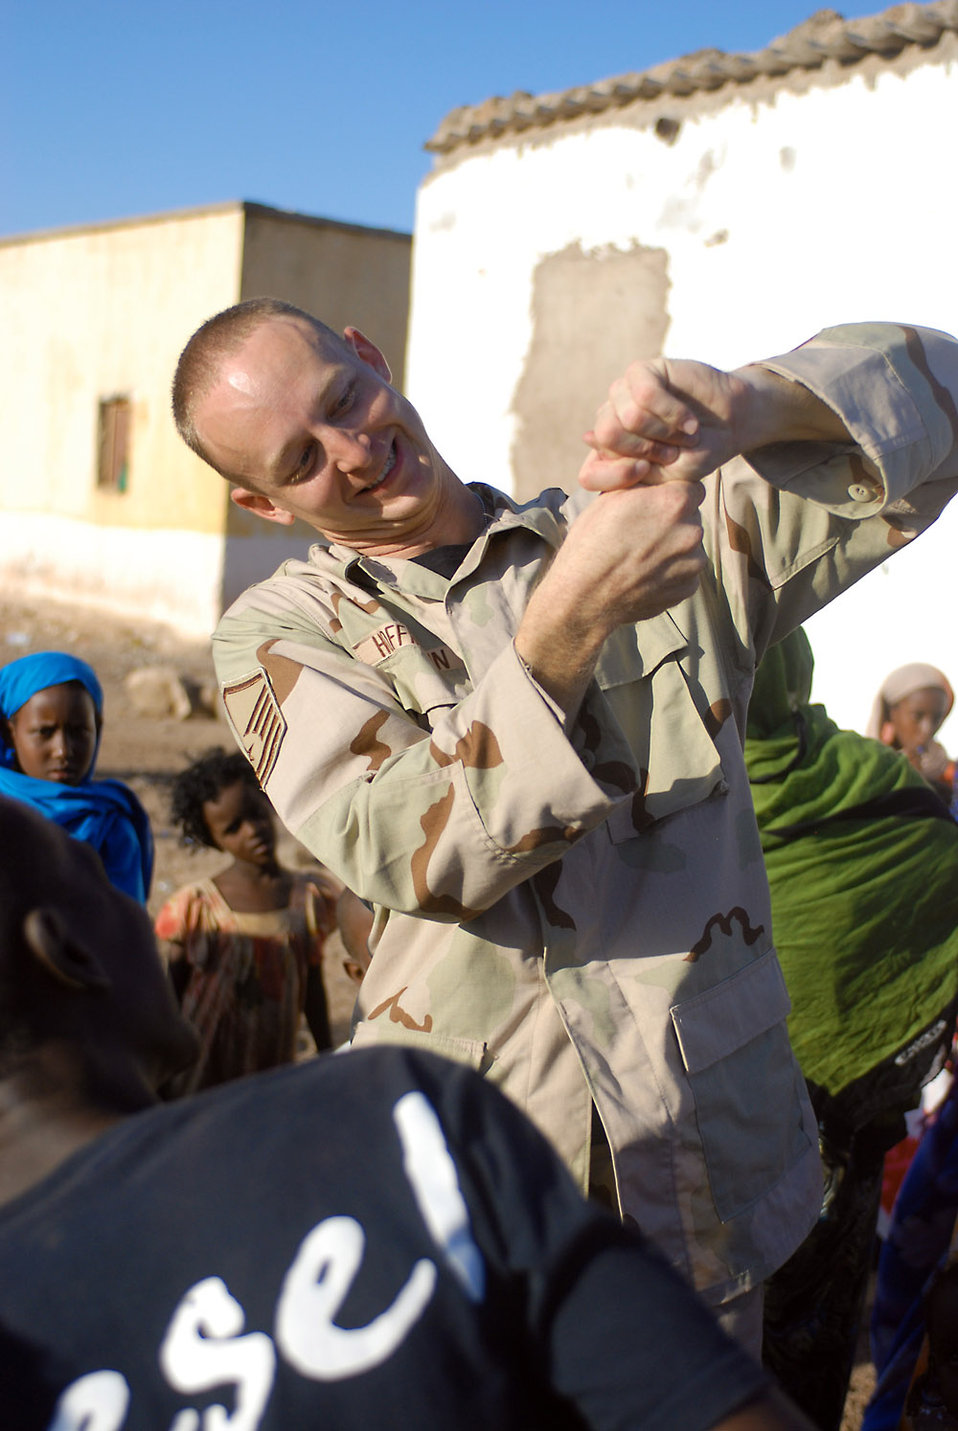 Airmen, Marines team up for Djibouti humanitarian mission